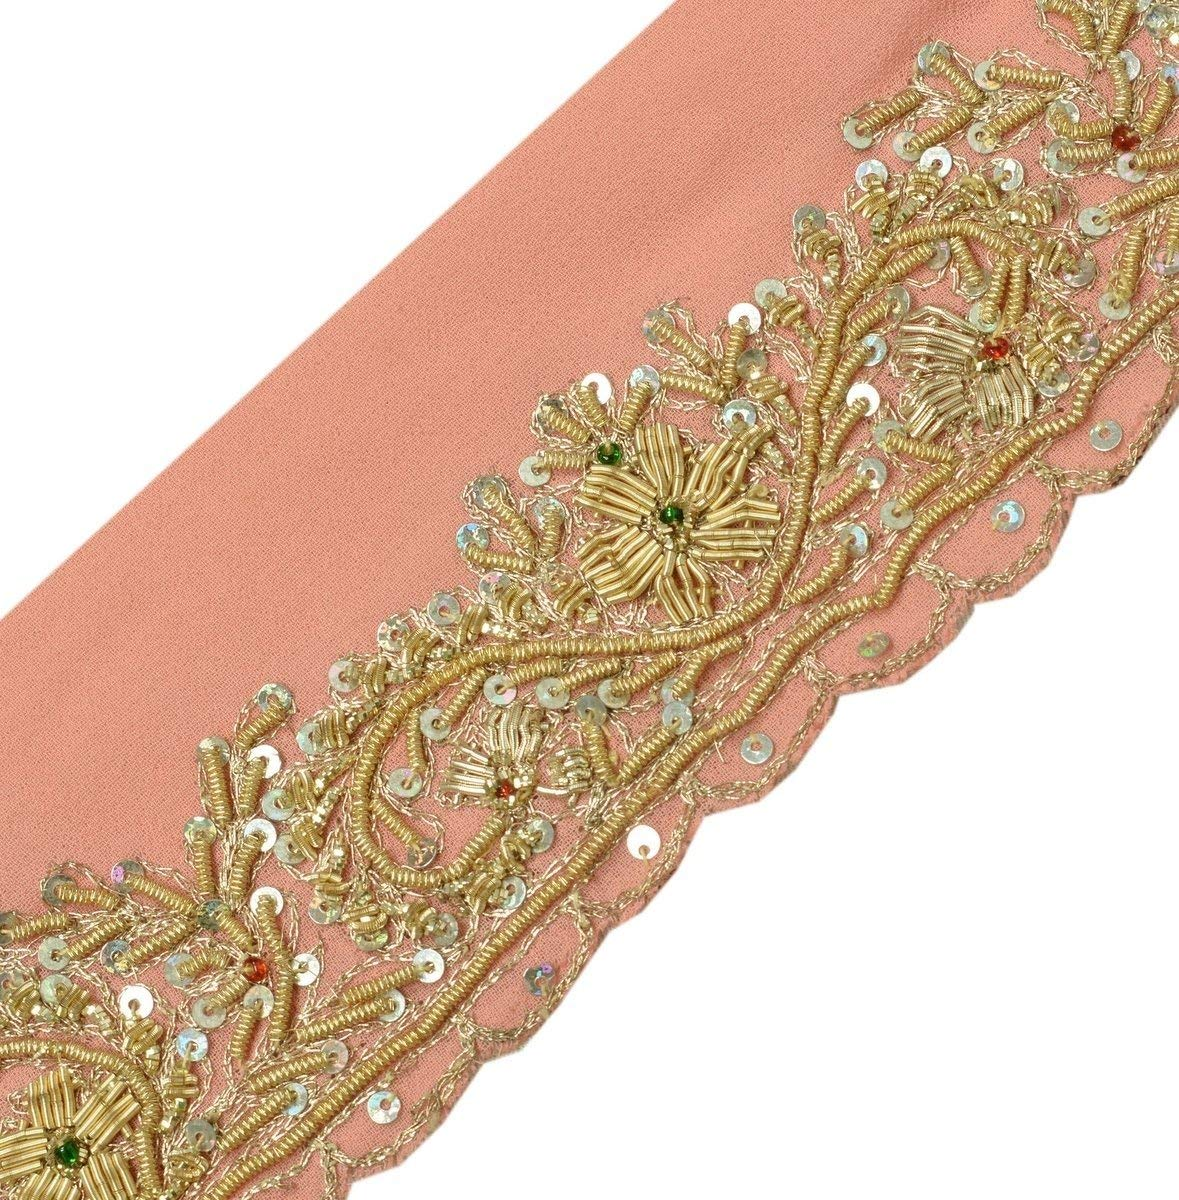 Trims Reasonable Vintage Sari Border Antique Hand Beaded Trim Sewing Pink Zari Lace Sewing